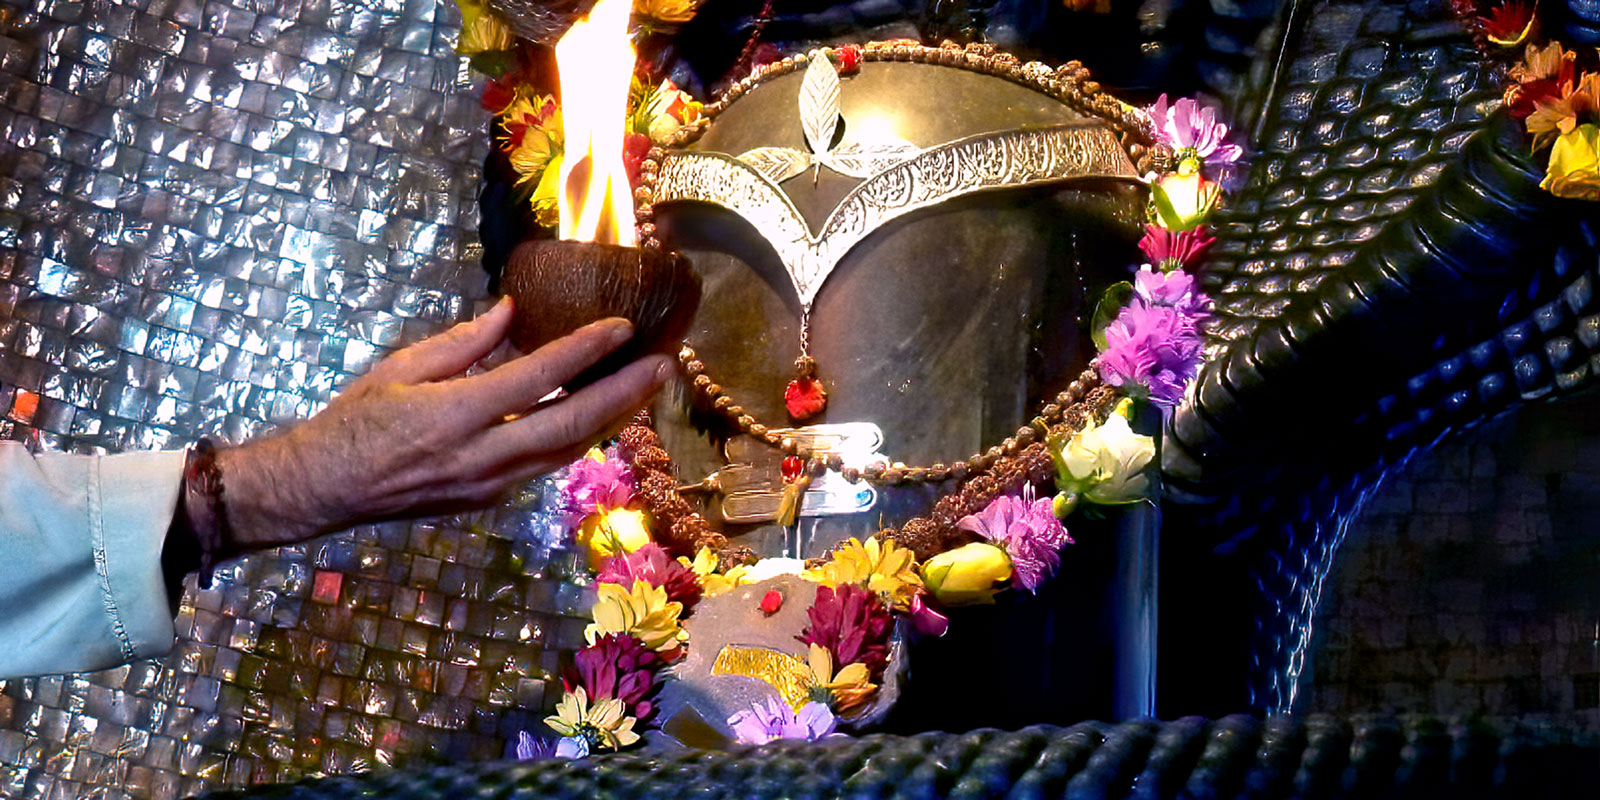 A priest offers aarthi to Somaskanda Lingam